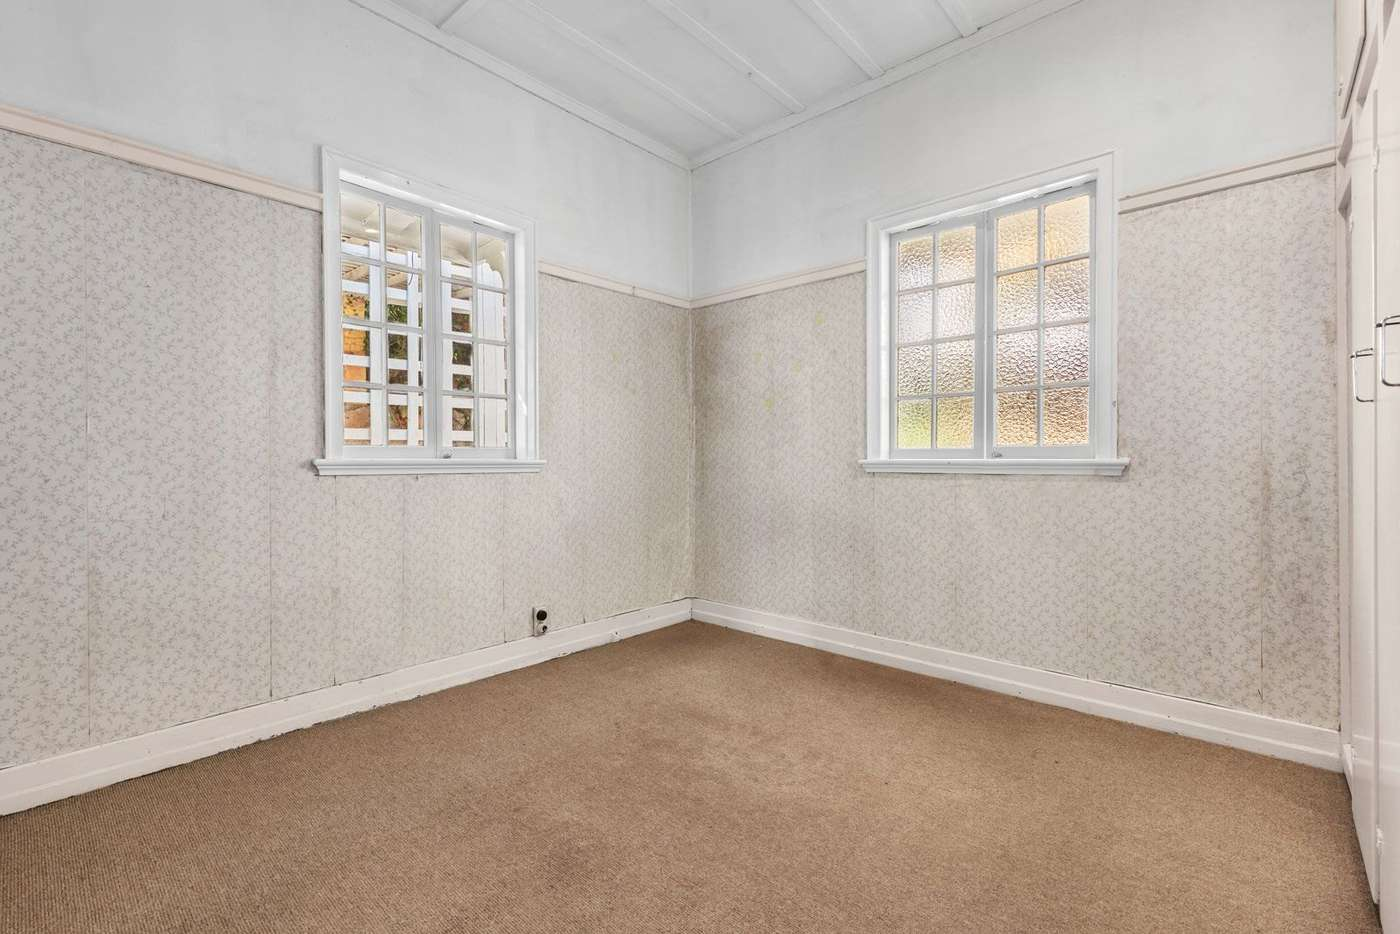 Seventh view of Homely house listing, 11 Prospect Terrace, Hamilton QLD 4007